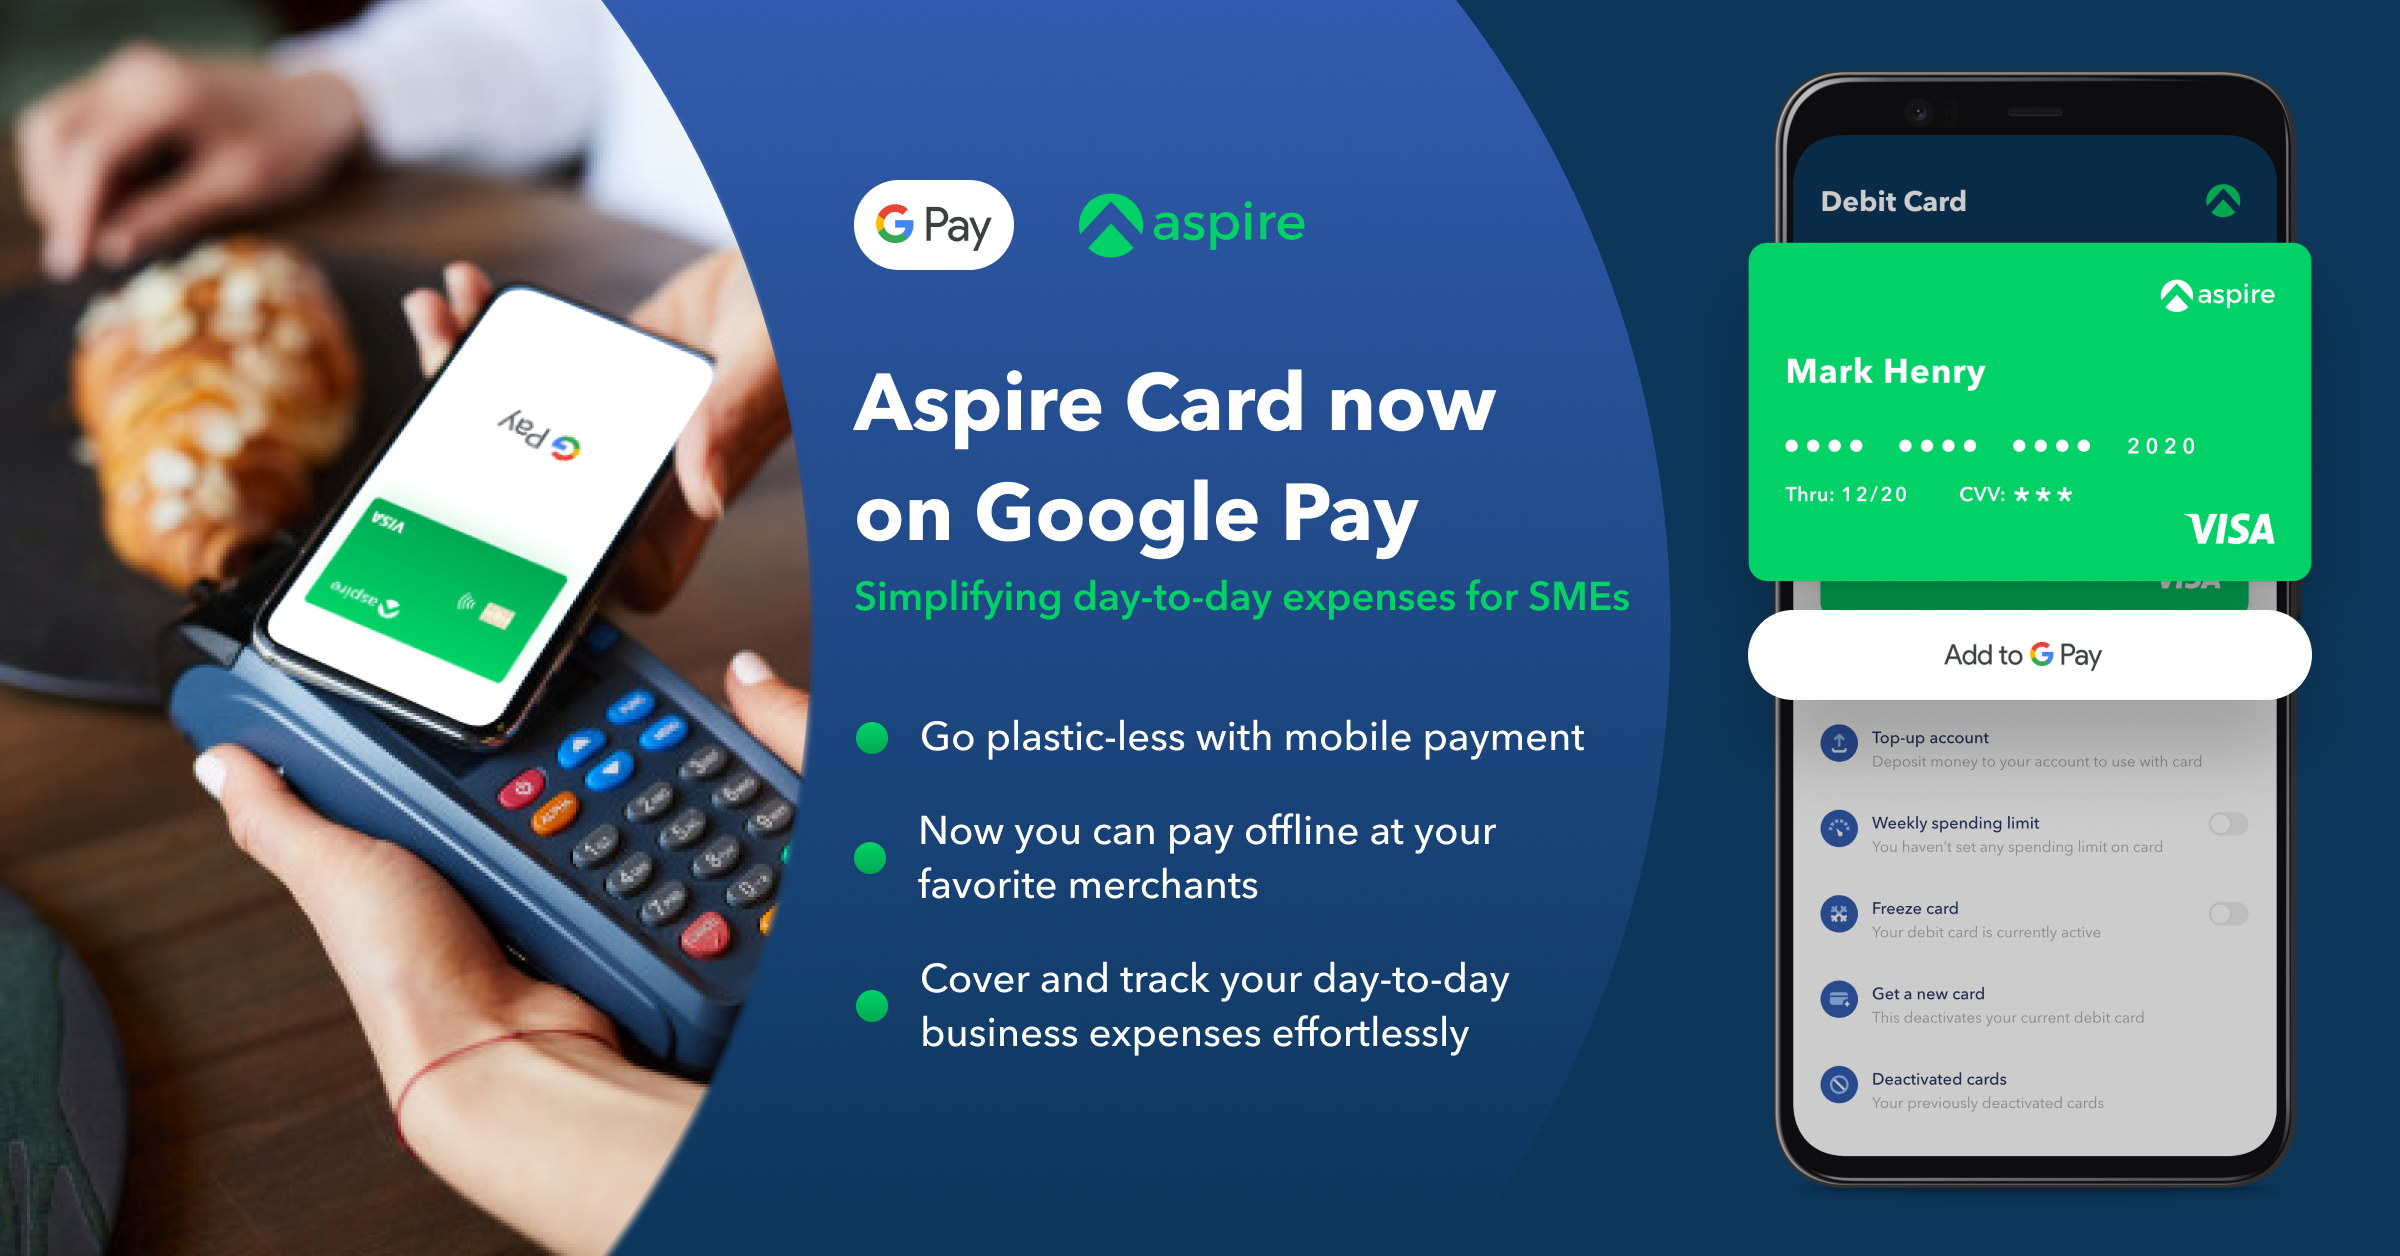 Aspire, the 1st Business Neobank in Southeast Asia, to make its cards available on Google Pay